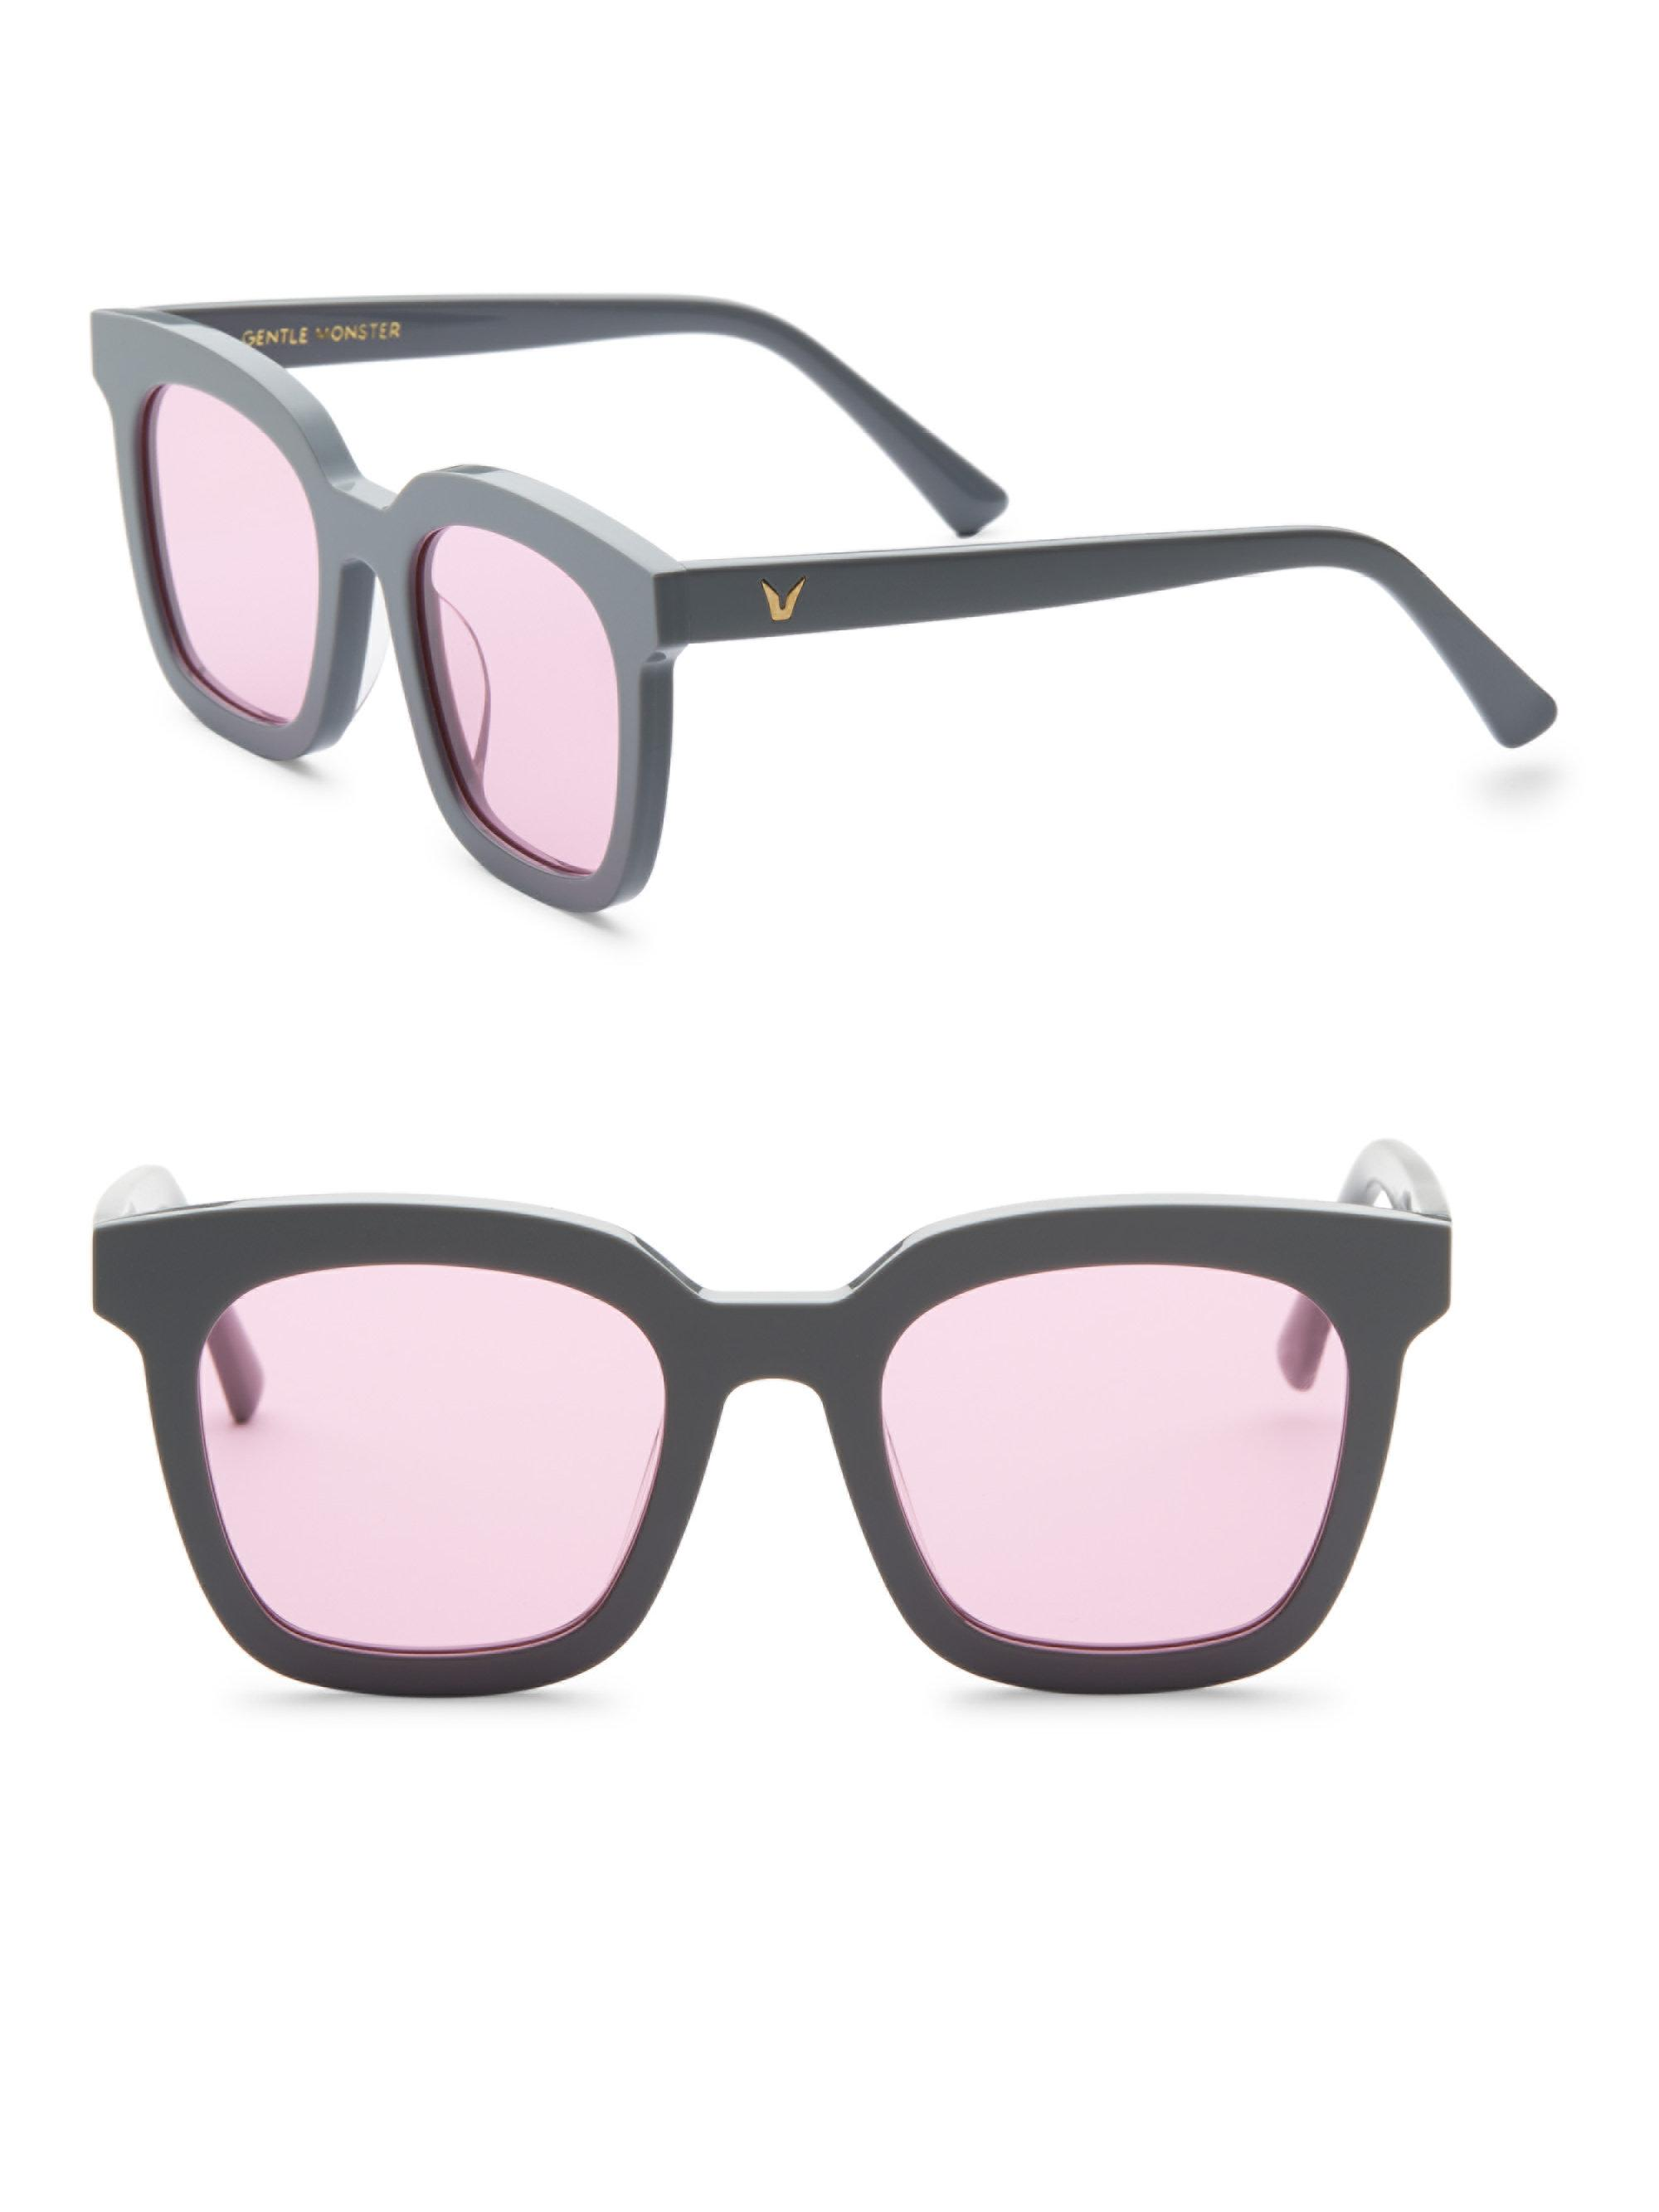 81562f12627 Lyst - Gentle Monster Finn 50mm Retro Square Sunglasses in Gray